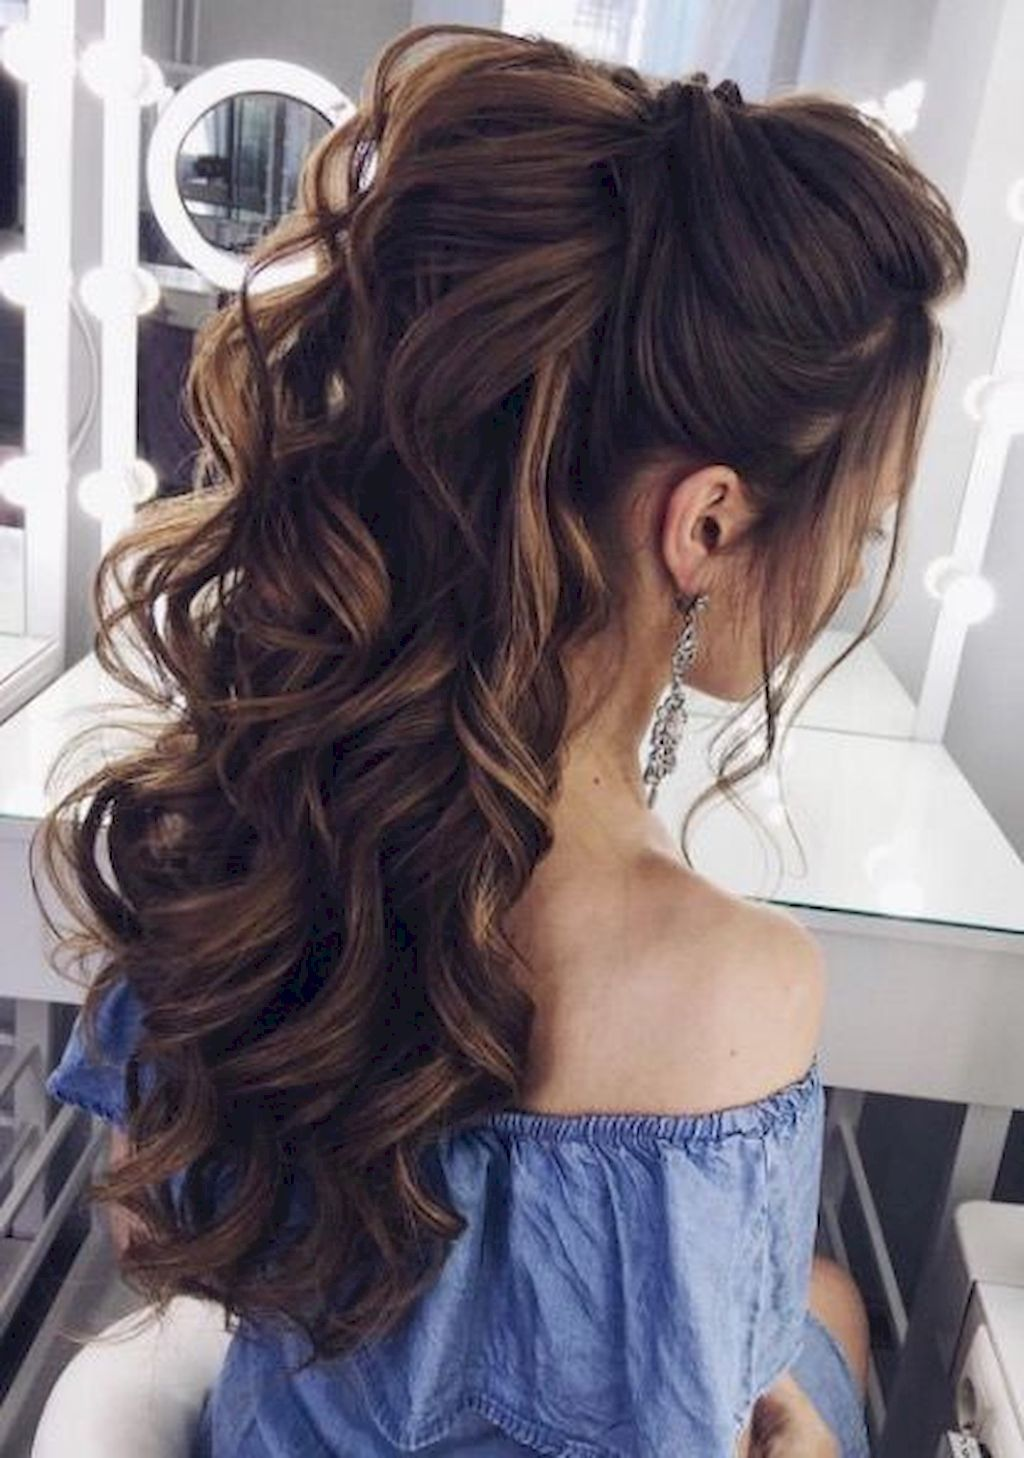 pin by scott lemery on bridesmaid hairstyle | long hair